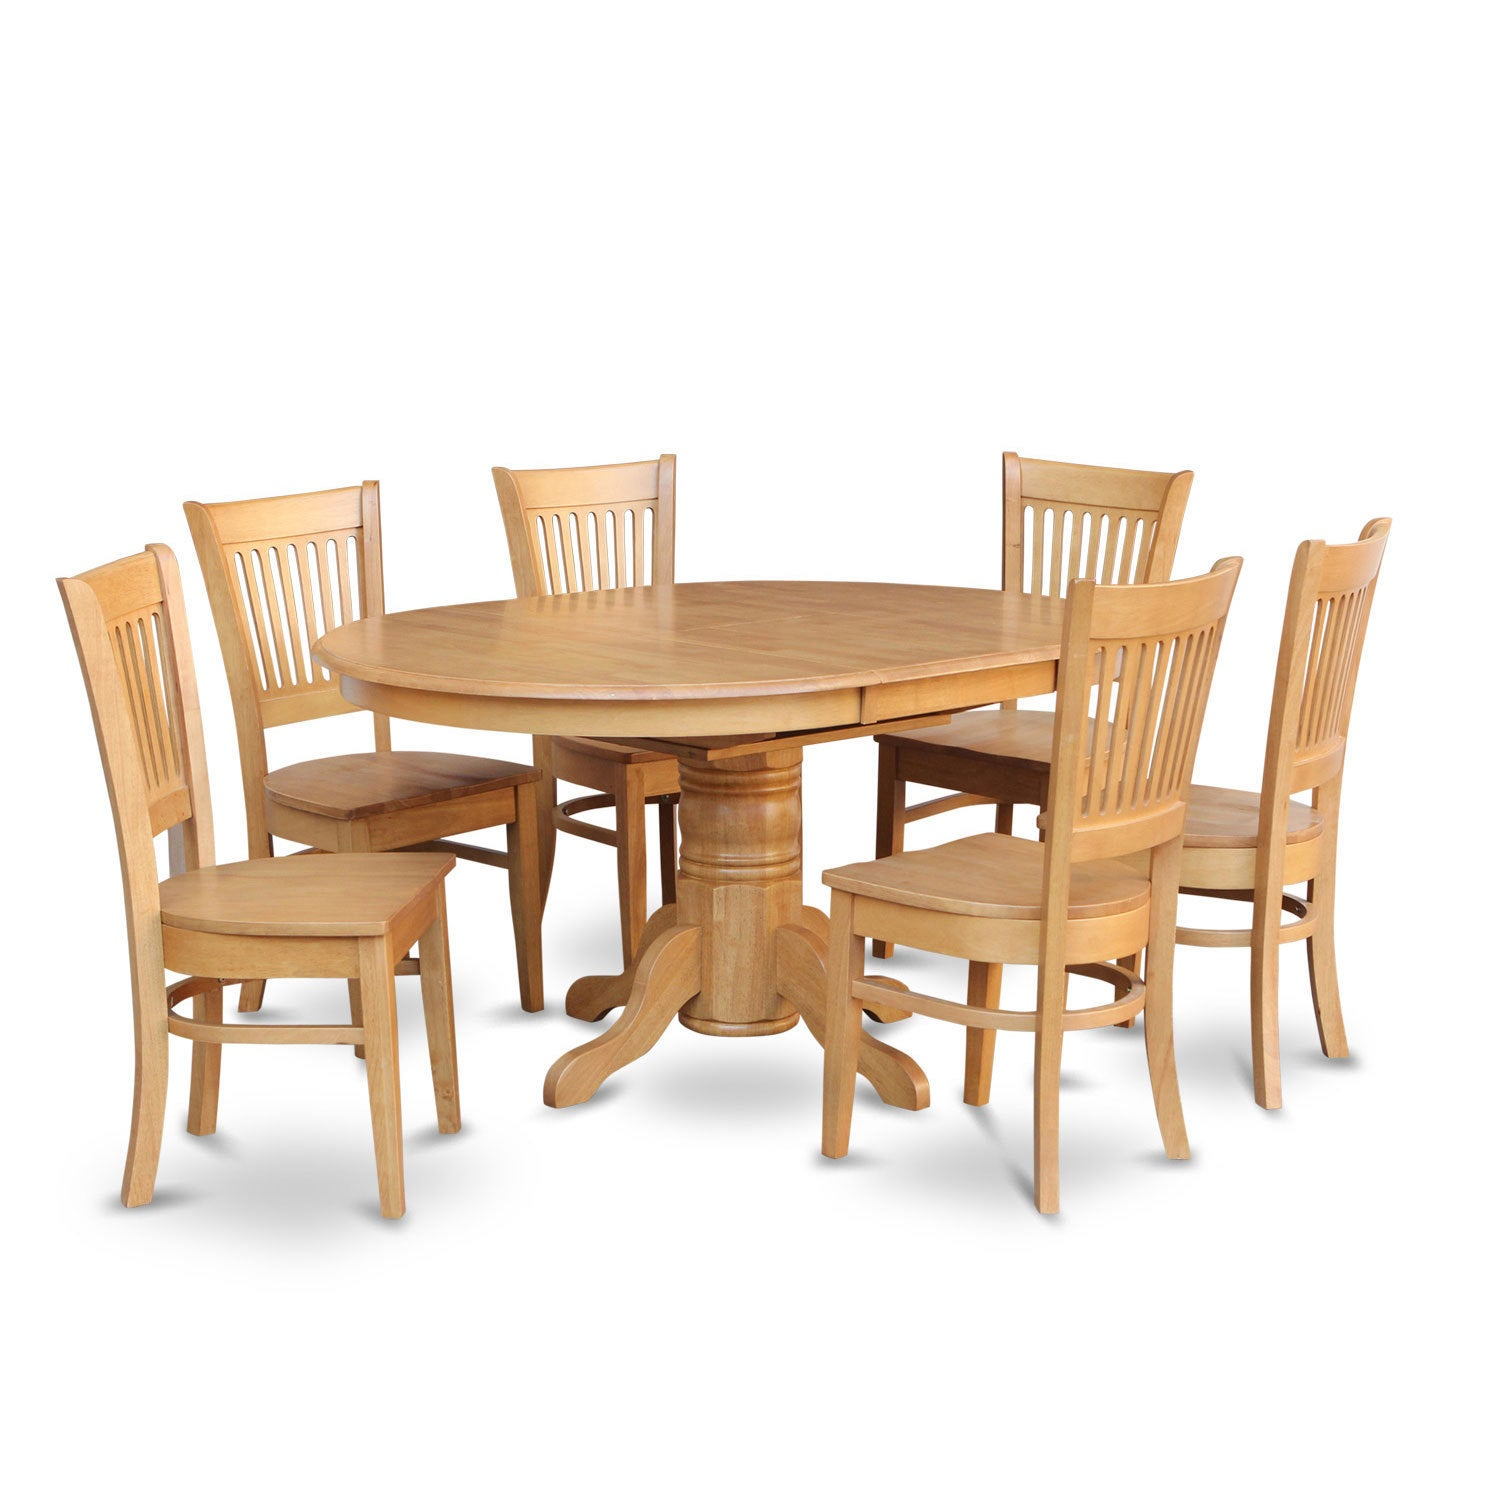 7 Piece Dining Table With Leaf And 6 Dinette Chairs